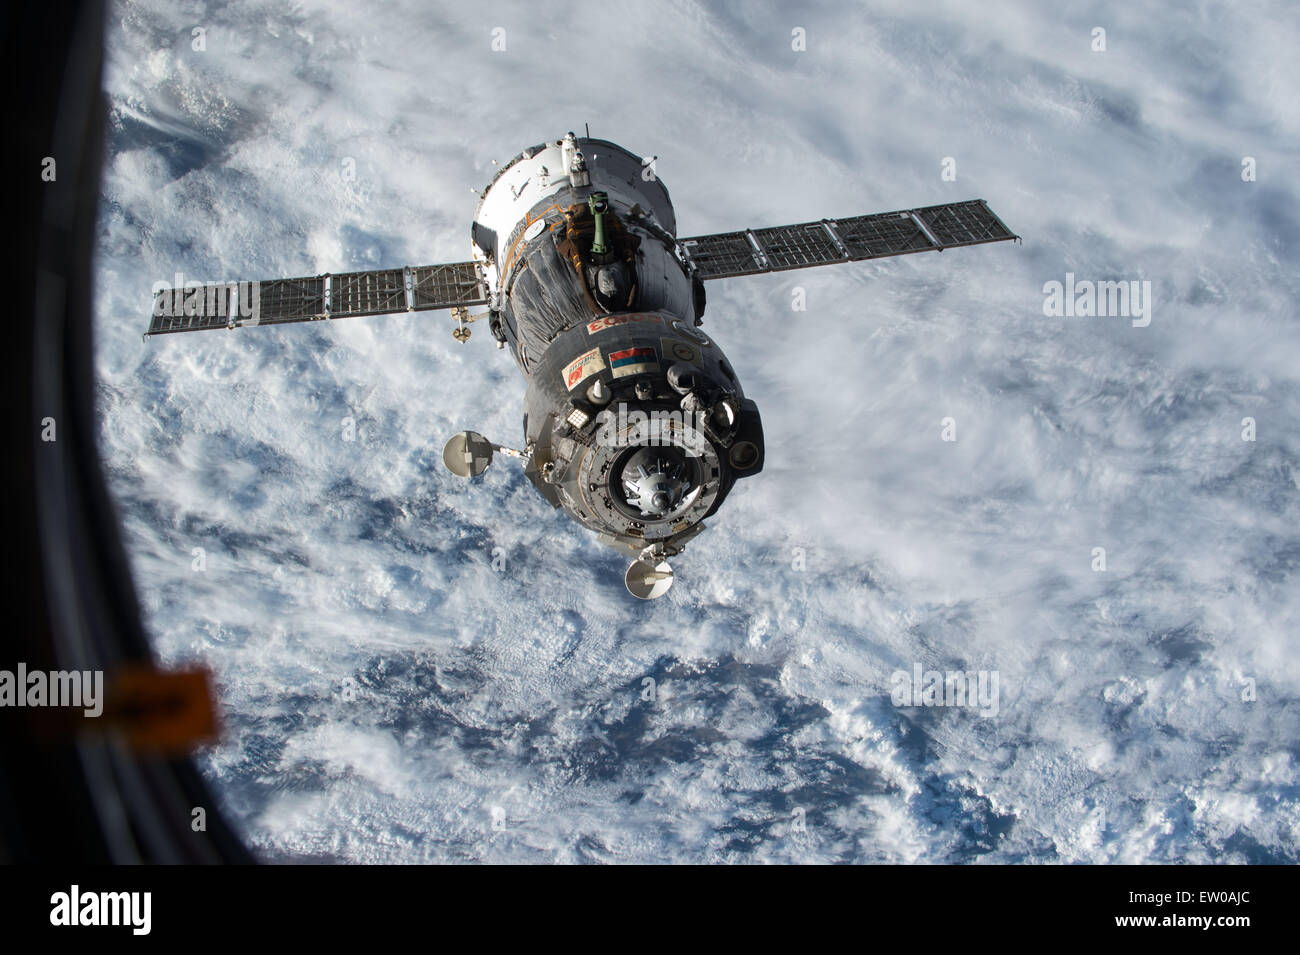 The Russian Soyuz TMA-15M spacecraft carrying Expedition 43 crew back to Earth disengages from the International - Stock Image